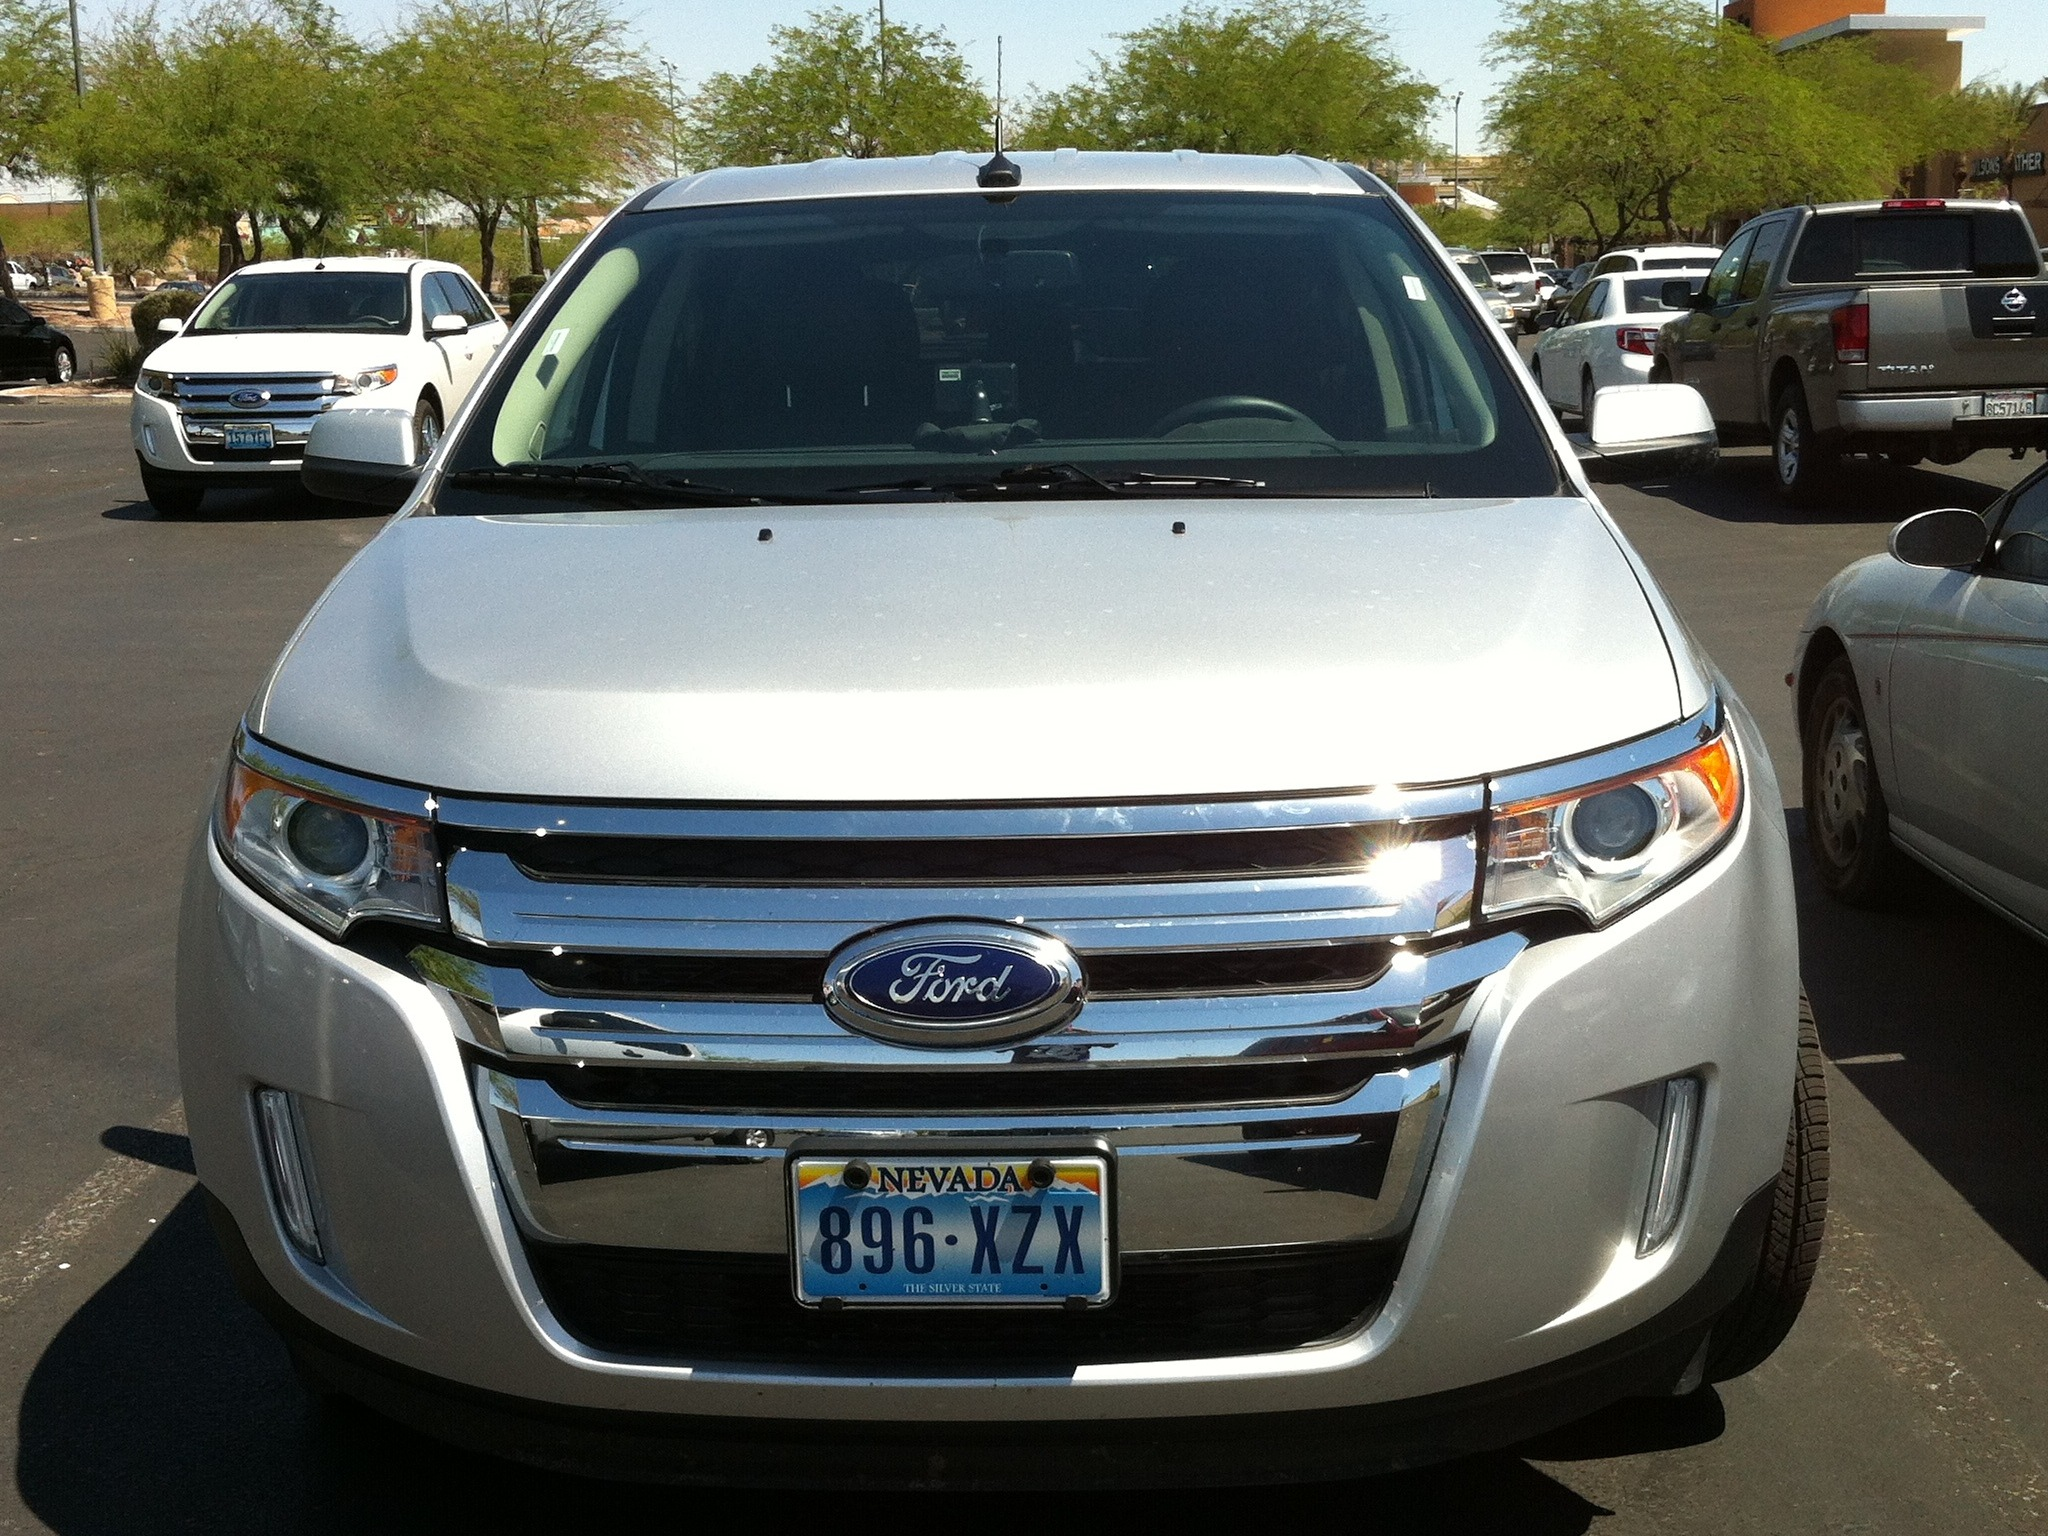 Ford Edge  At The Las Vegas Outlet Mall South Parking Lot My Last